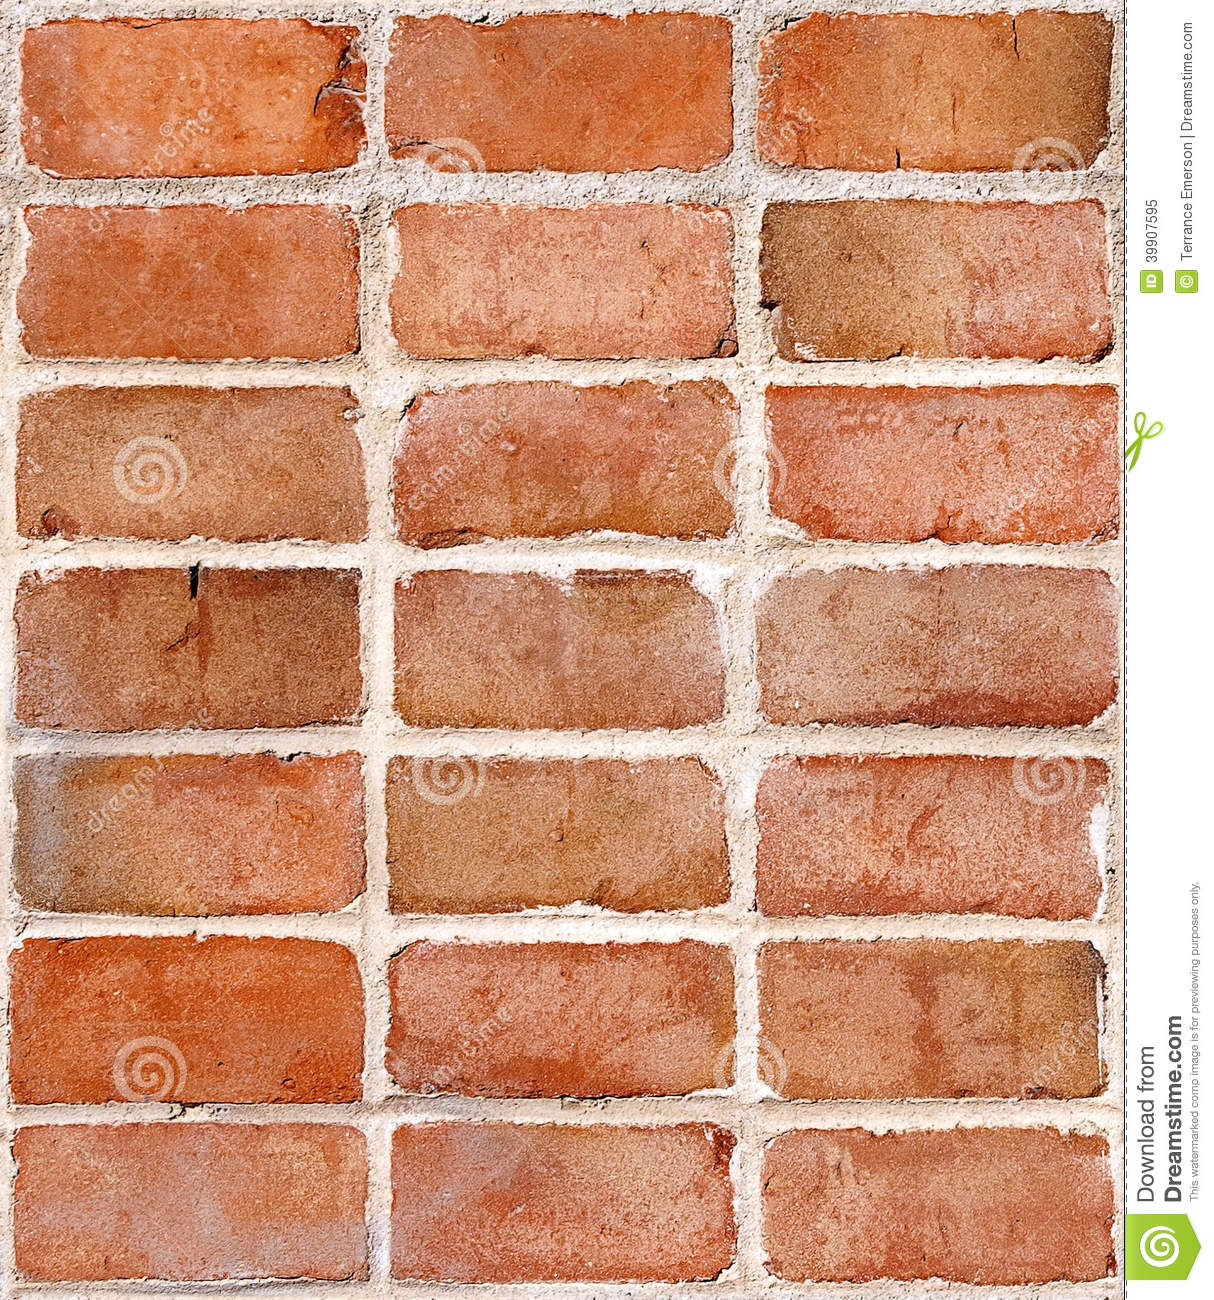 Red Brick Wall Repeating Tile Stock Photo Image 39907595